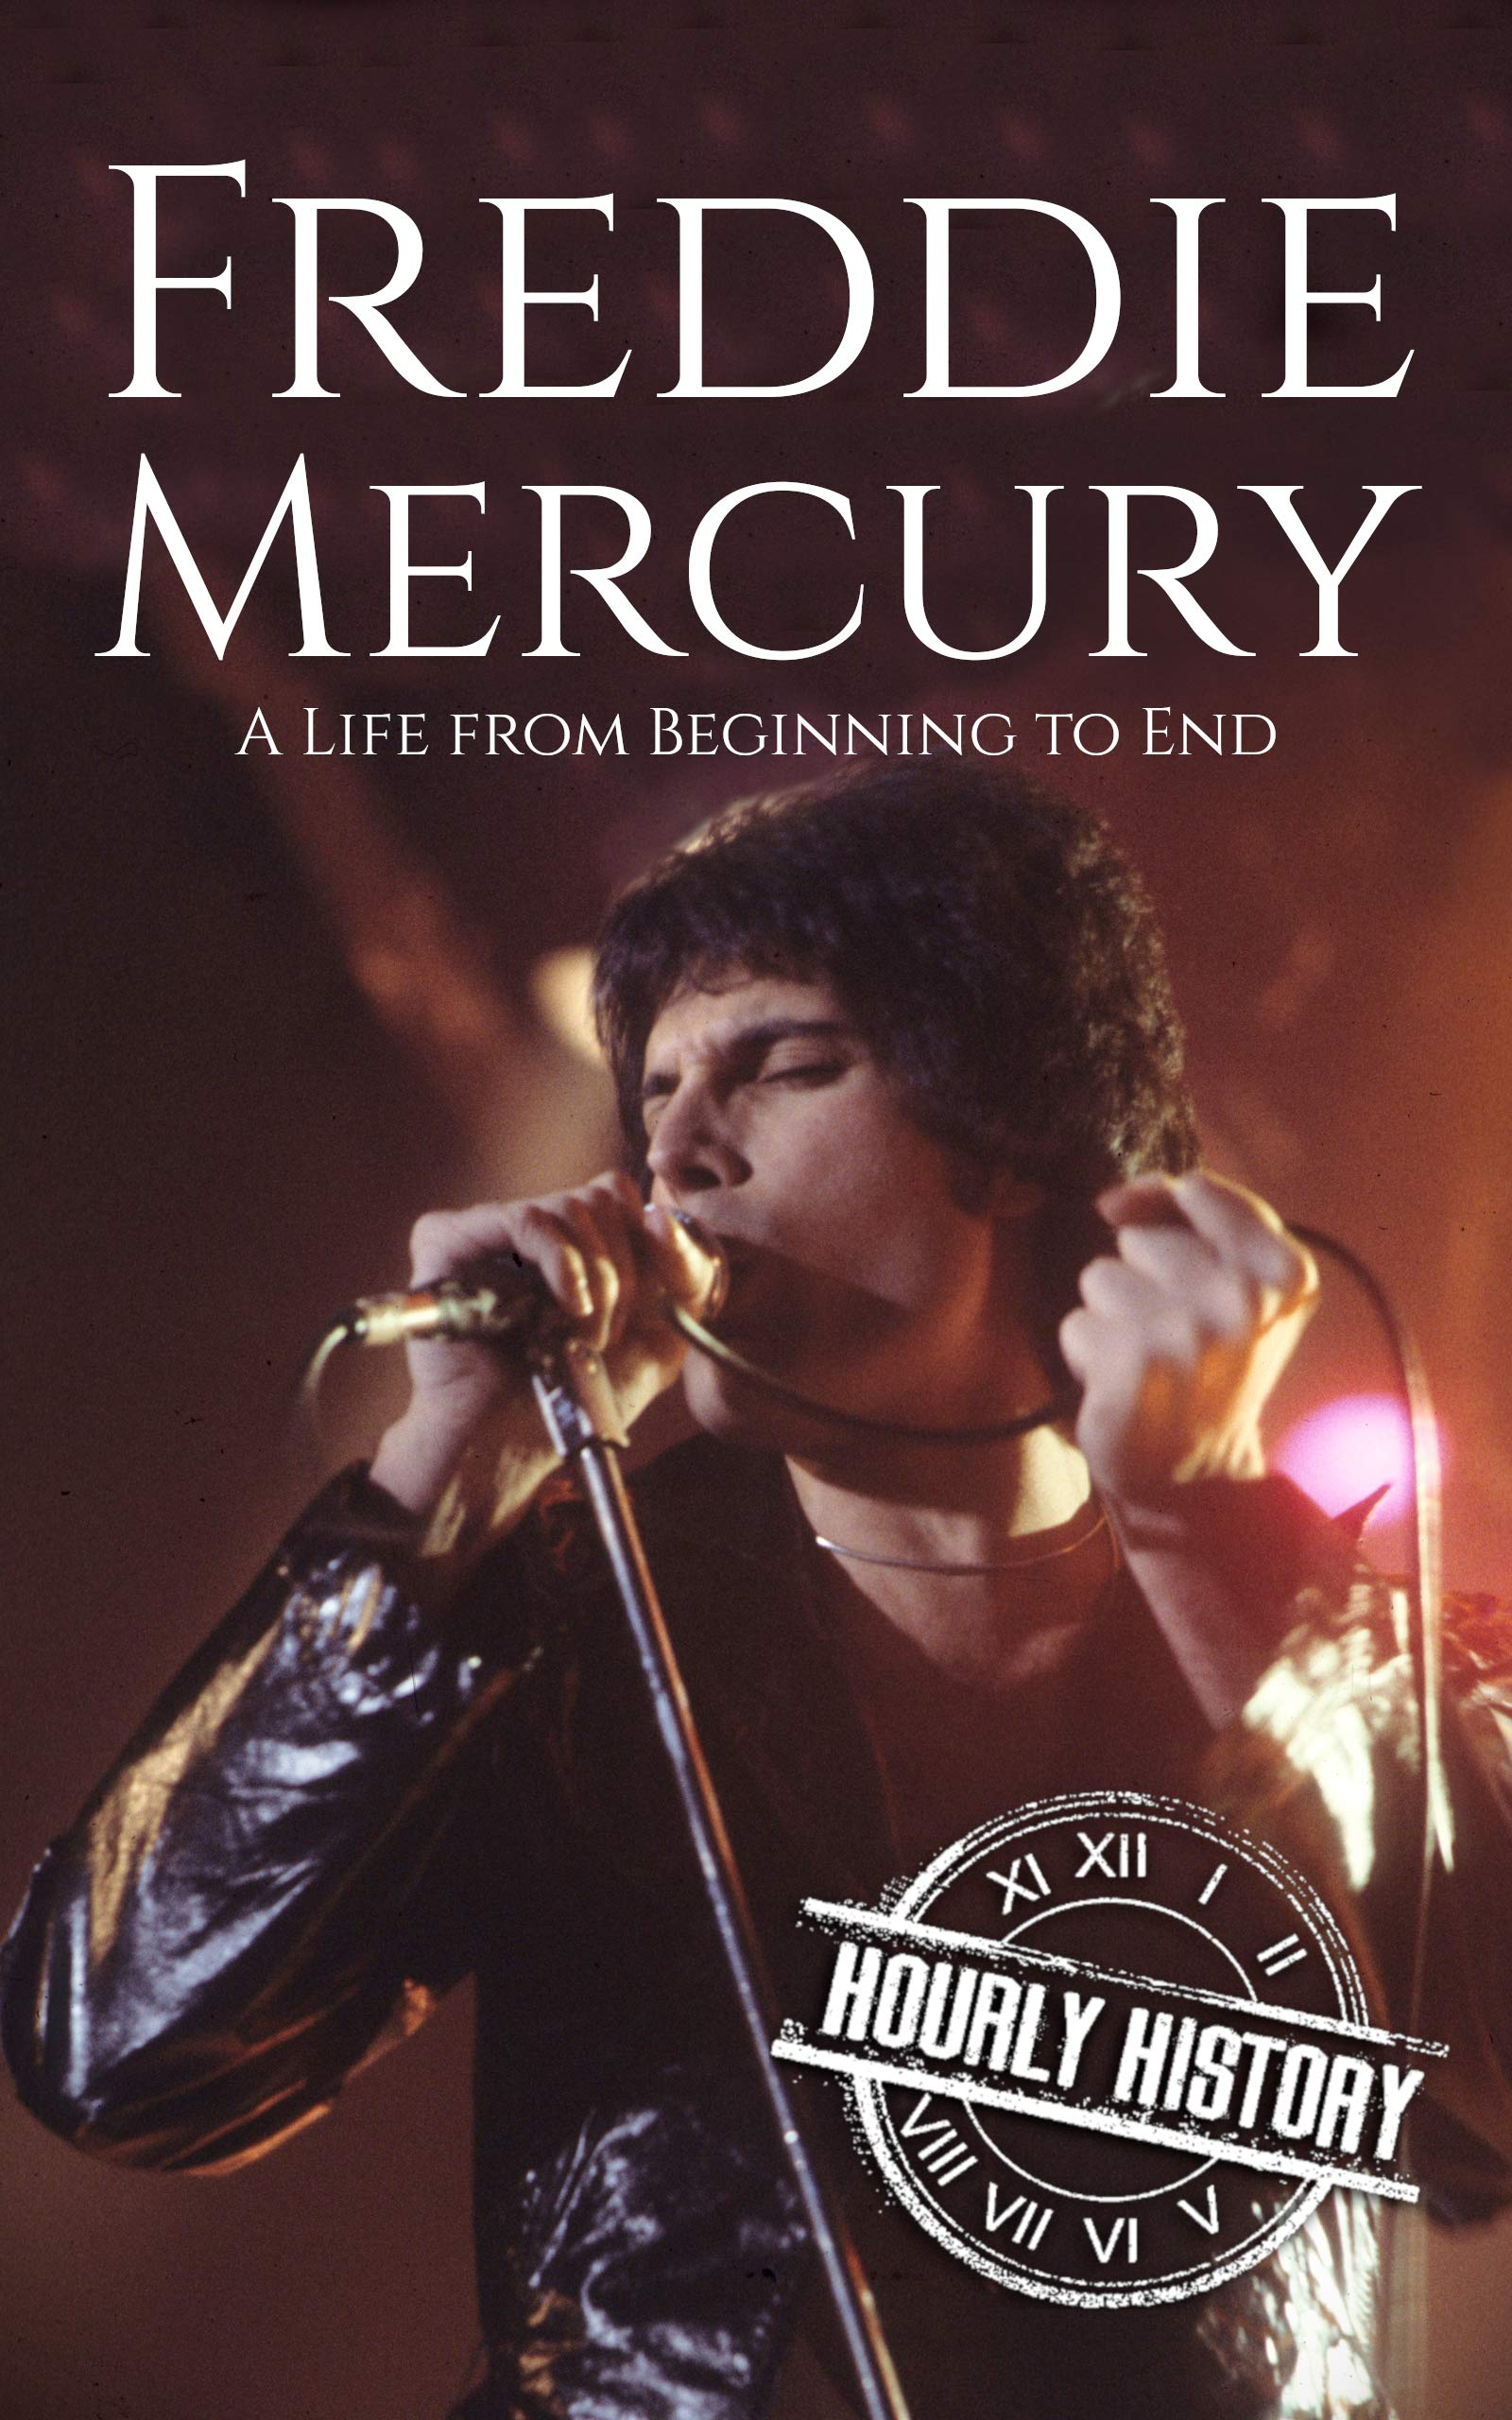 Freddie Mercury: A Life from Beginning to End